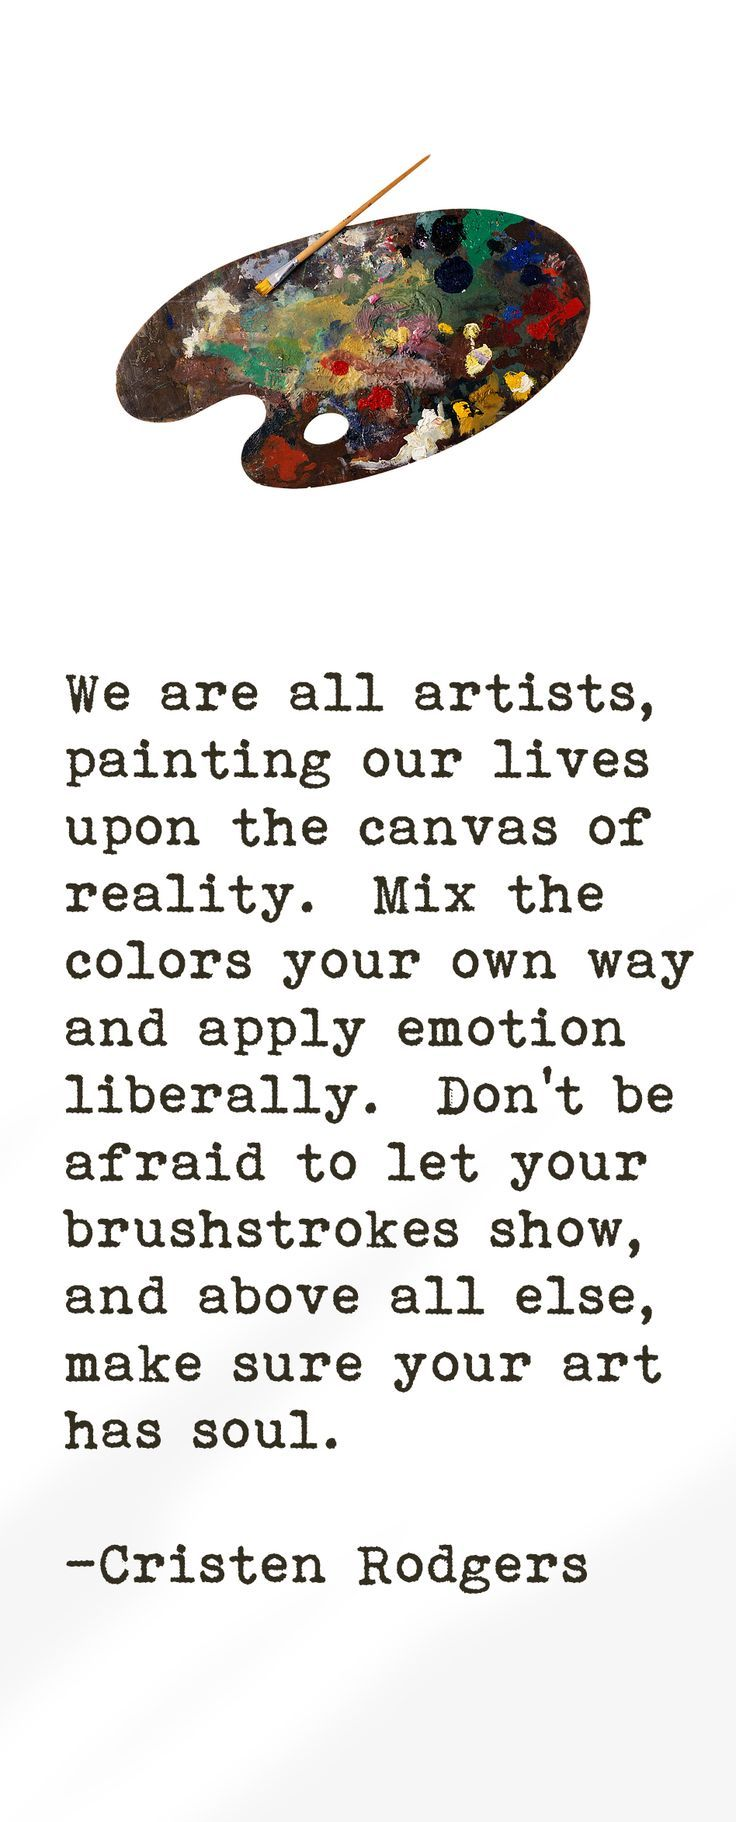 Click the Pin to get more We are all artists, painting our lives upon the canvas of reality. Mix the colors your own way and apply emotion liberally. Dont be afraid to let your brushstrokes show, and about all else, make sure your art has soul.